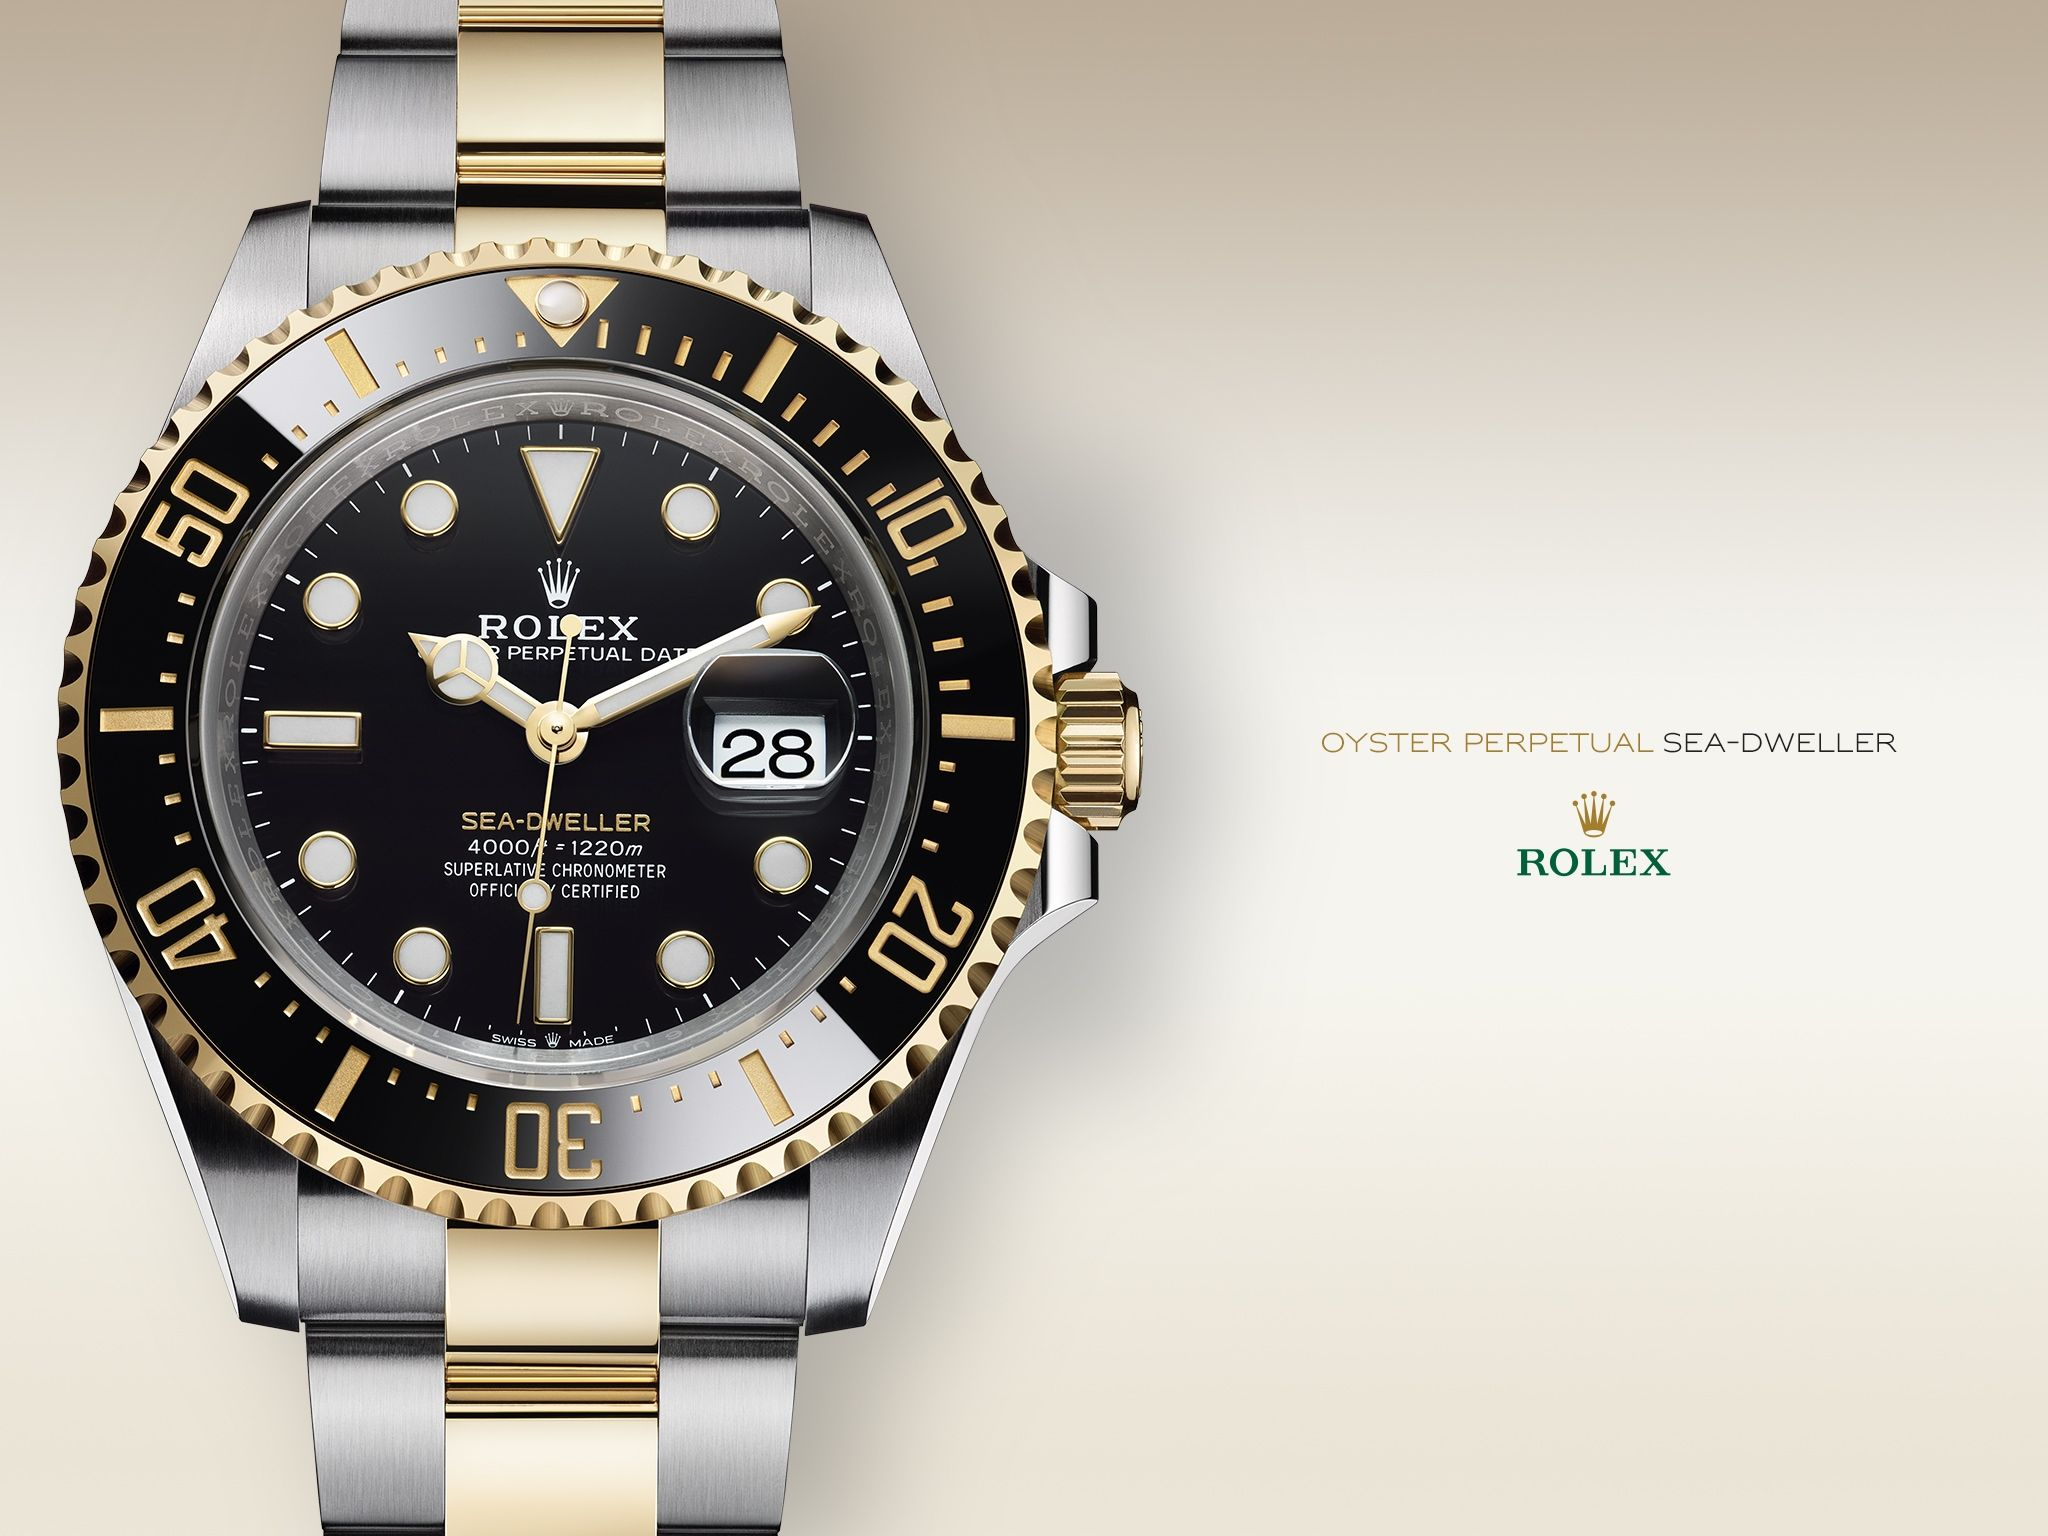 Rolex Wallpapers - Top Free Rolex